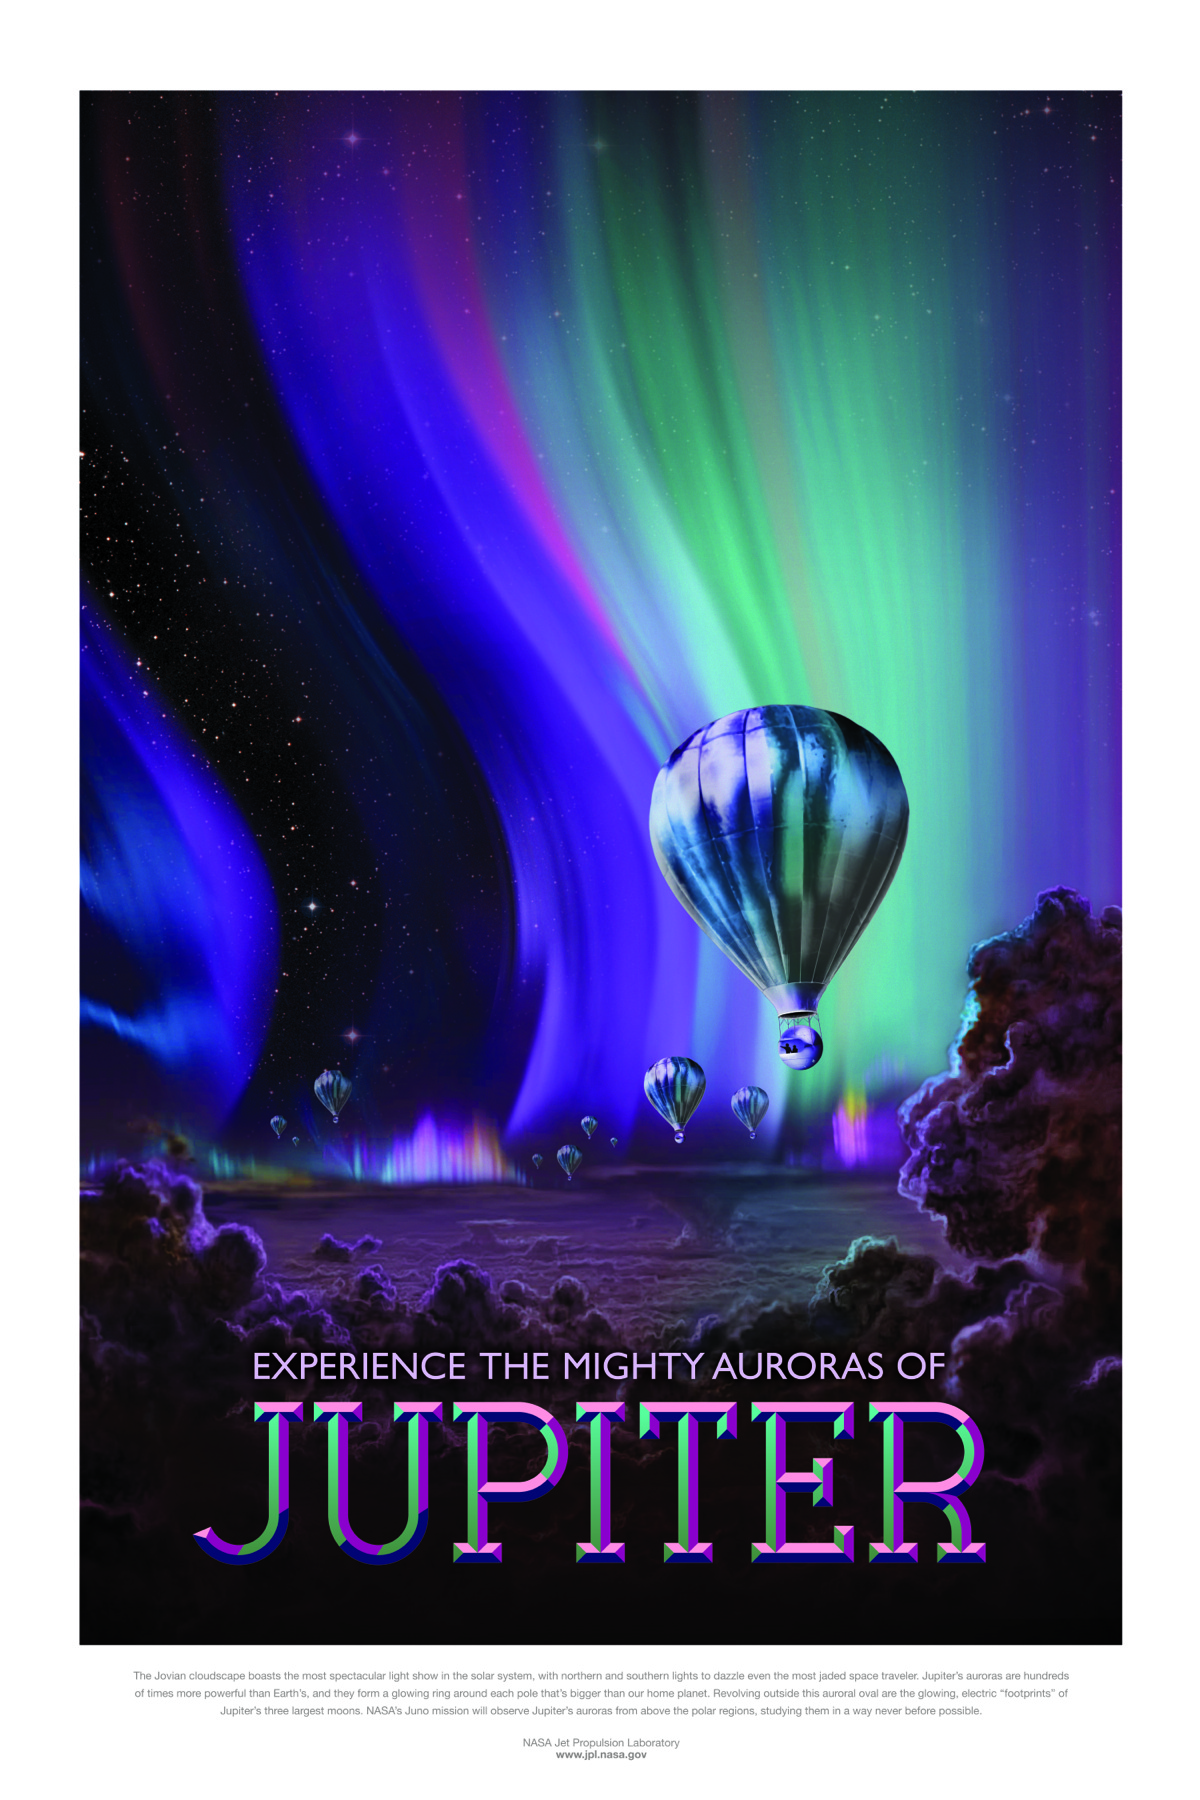 """The Jovian cloudscape boasts the most spectacular light show in the solar system, with northern and southern lights to dazzle even the most jaded space traveler. Jupiter's auroras are hundreds of times more powerful than Earth's, and they form a glowing ring around each pole that's bigger than our home planet. Revolving outside this auroral oval are the glowing, electric """"footprints"""" of Jupiter's three largest moons. NASA's Juno mission will observe Jupiter's auroras from above the polar regions, studying them in a way never before possible."""